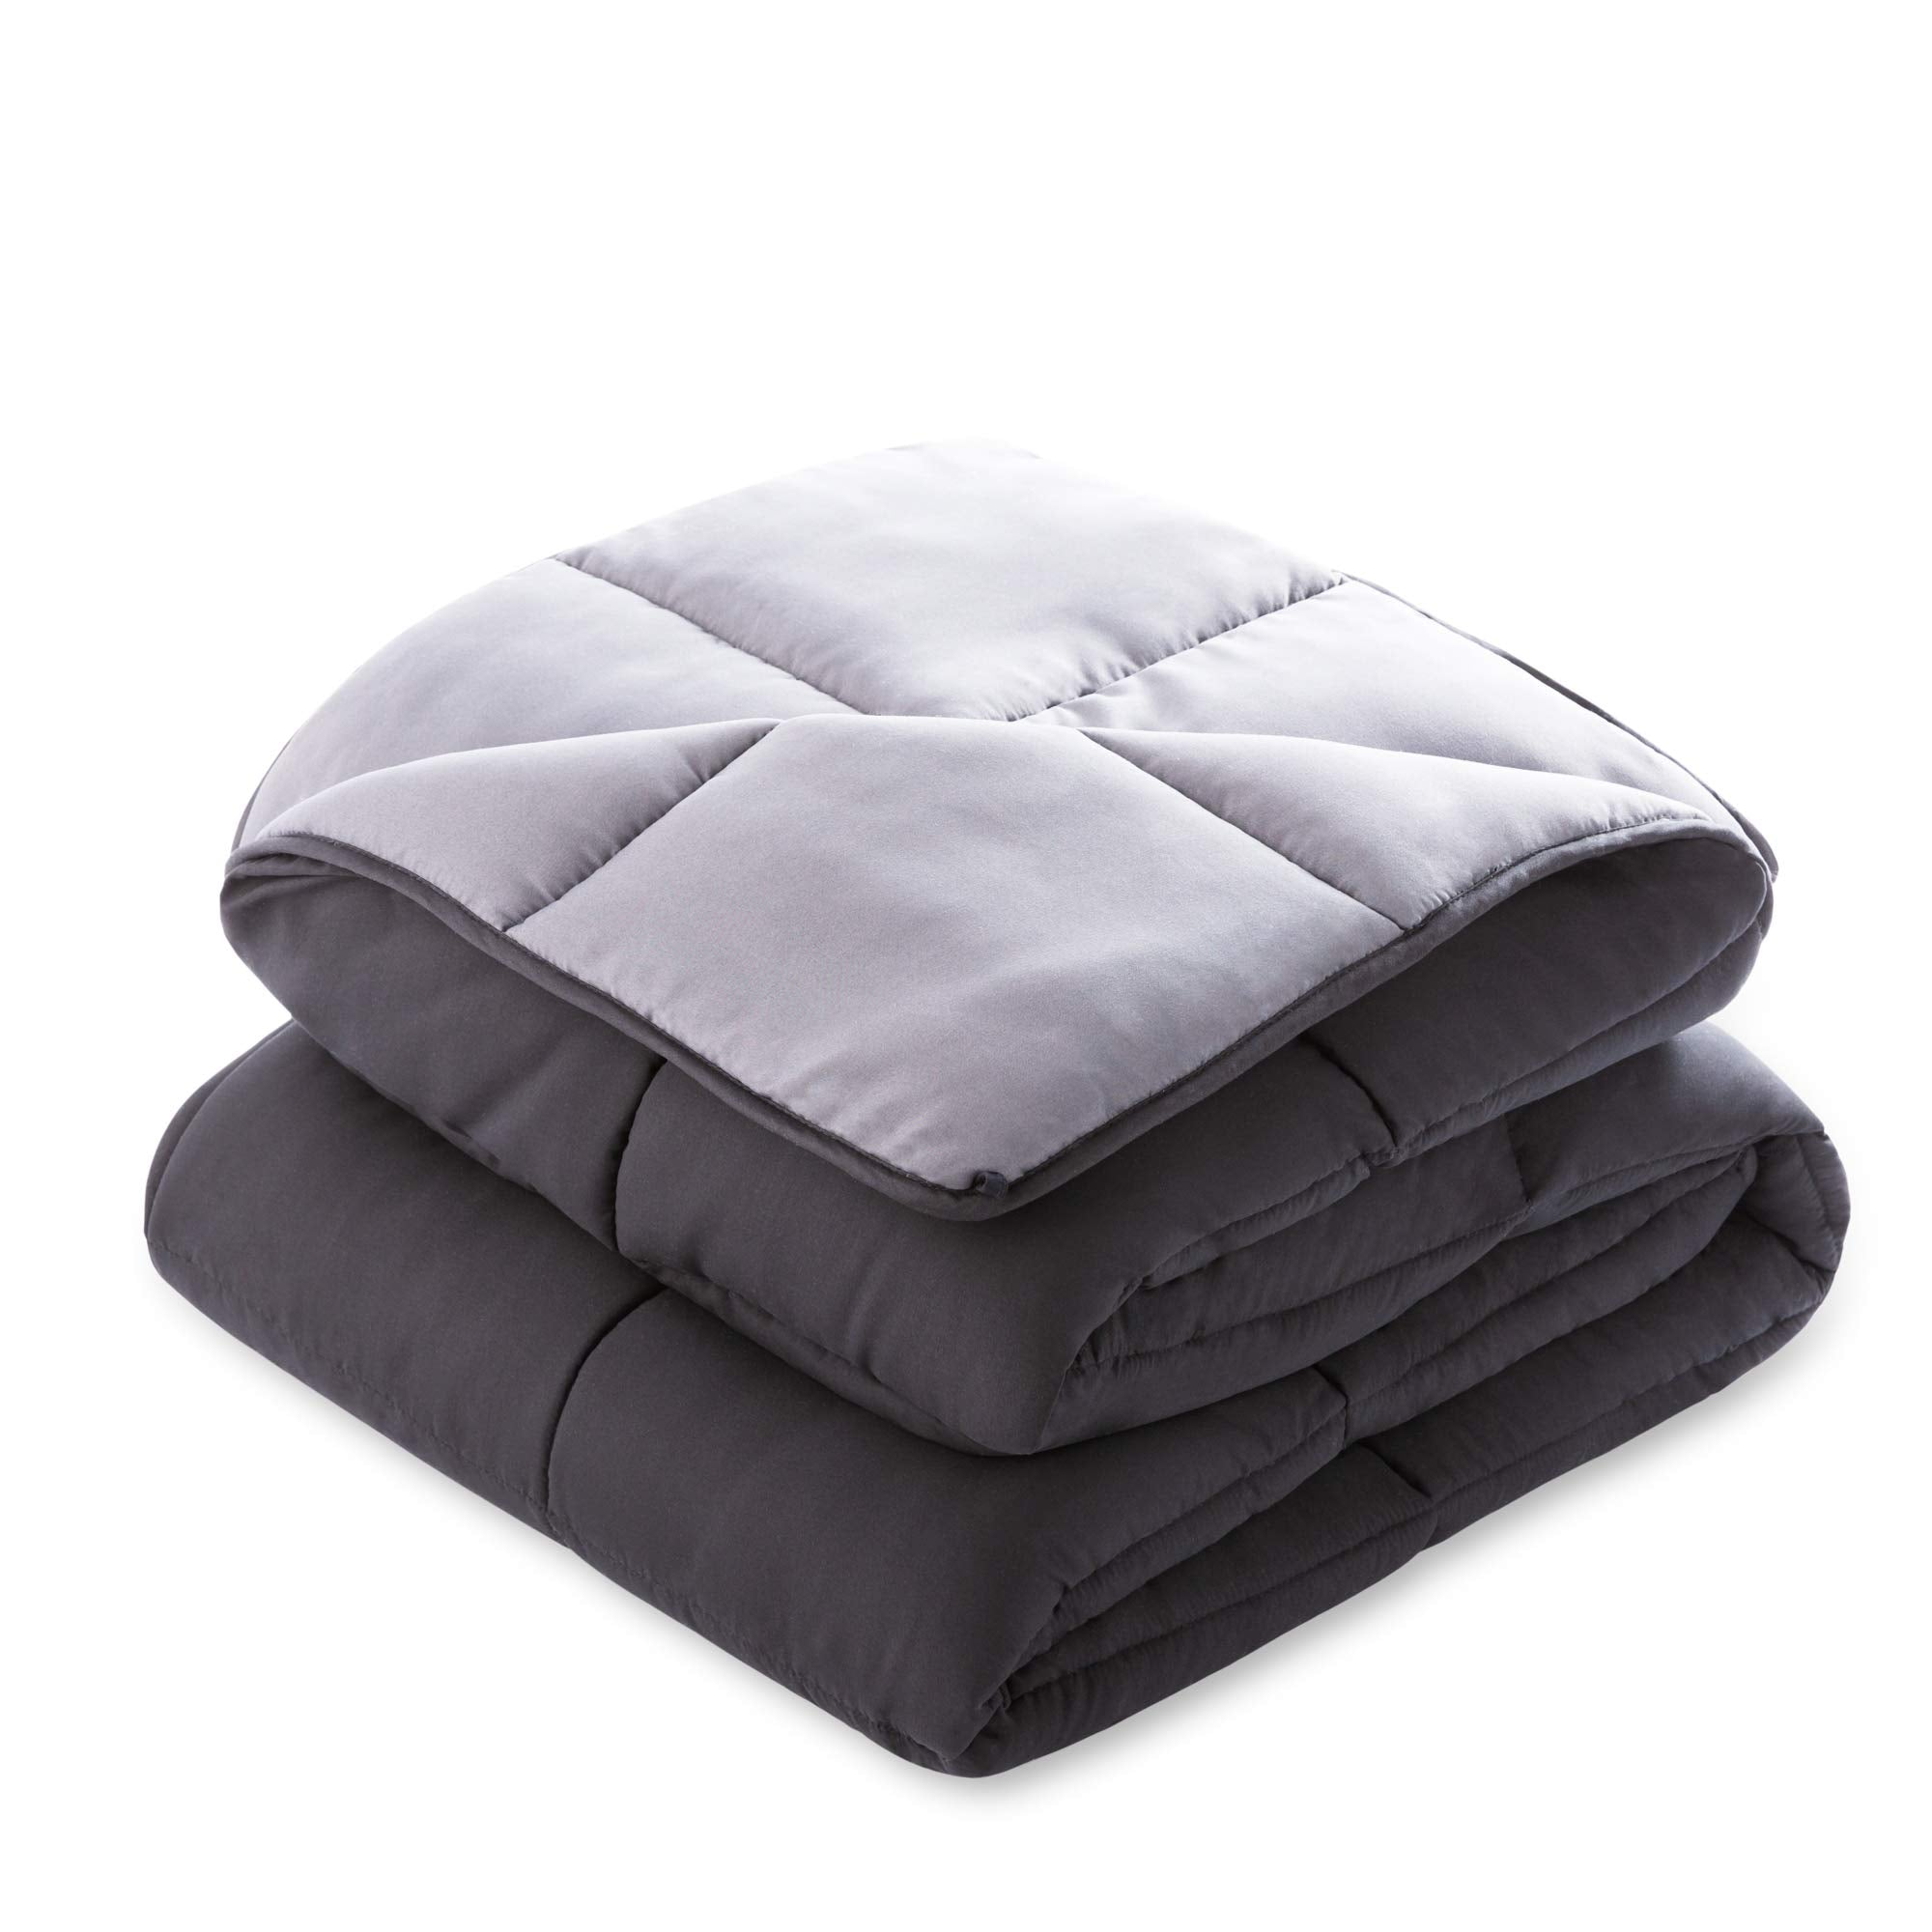 All-Season White Down Alternative Quilted Comforter